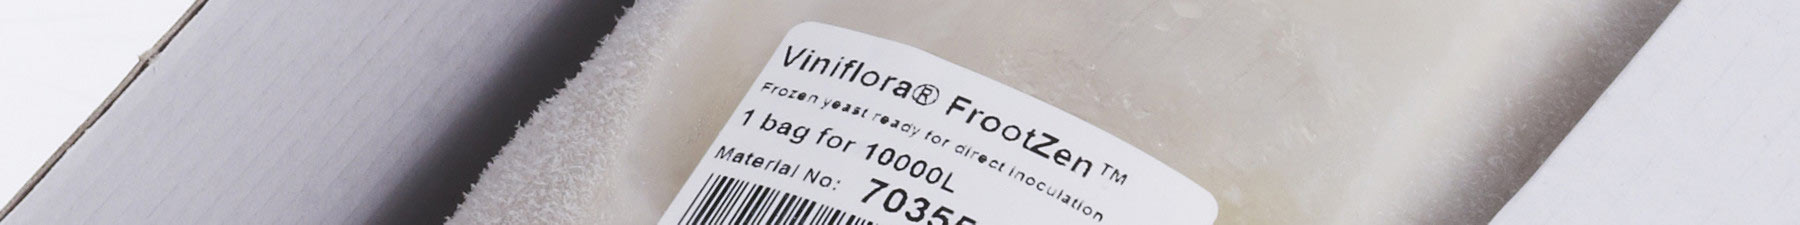 Viniflora FoootZen package in box